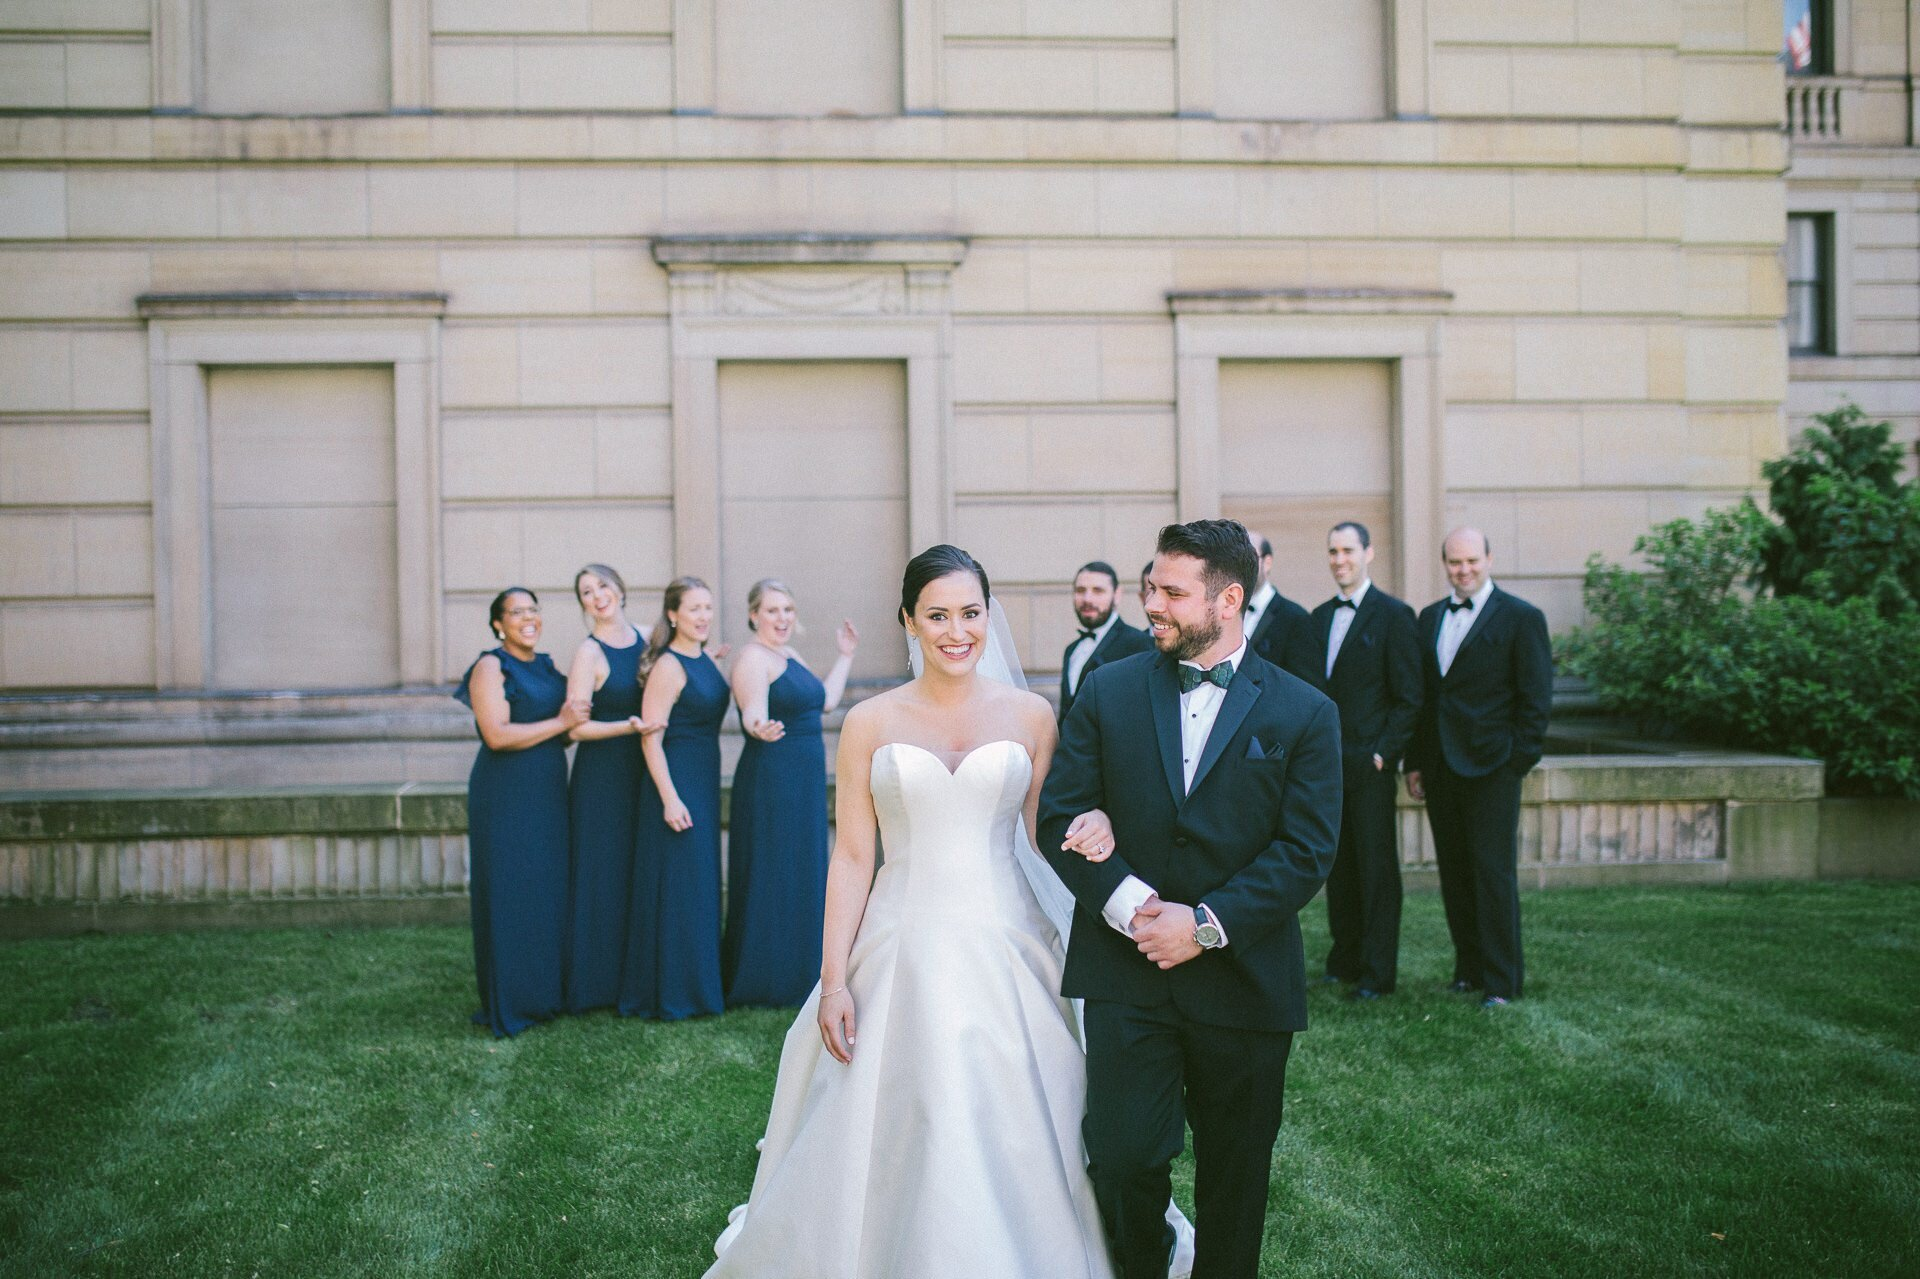 Playhouse State Theater Wedding Photographer in Cleveland 1 34.jpg